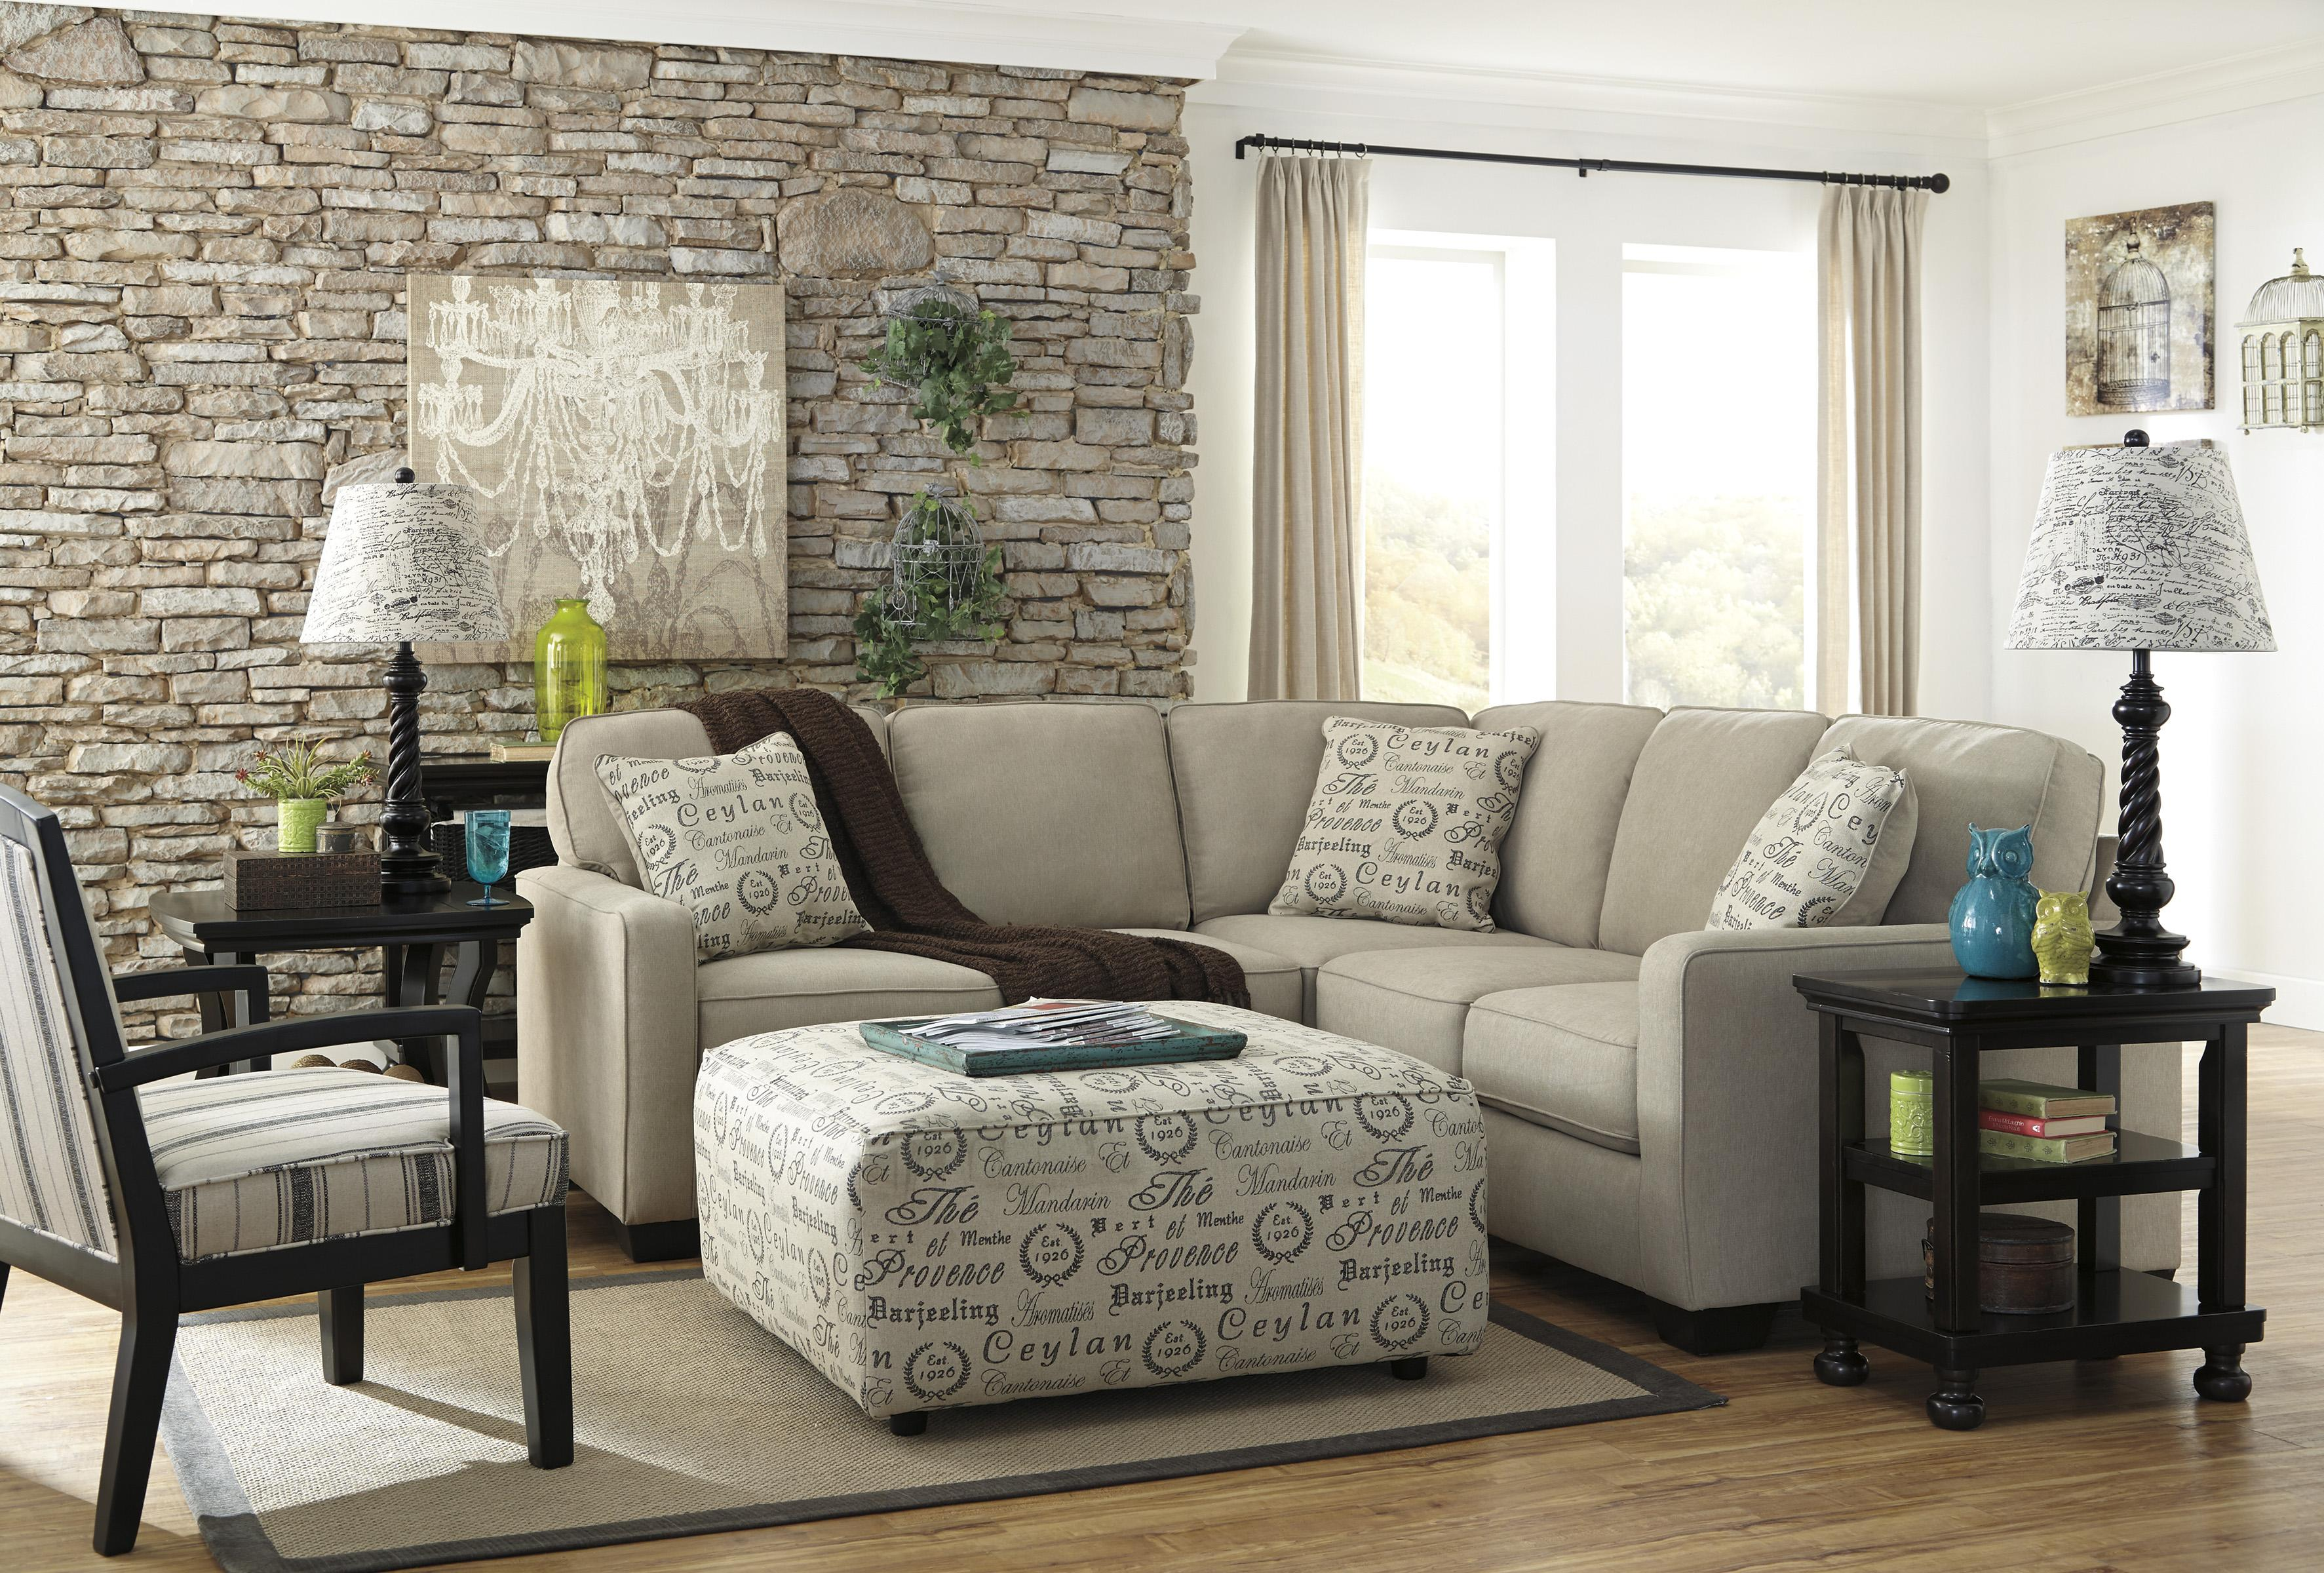 Signature Design by Ashley Alenya Quartz 3 Piece Sectional with